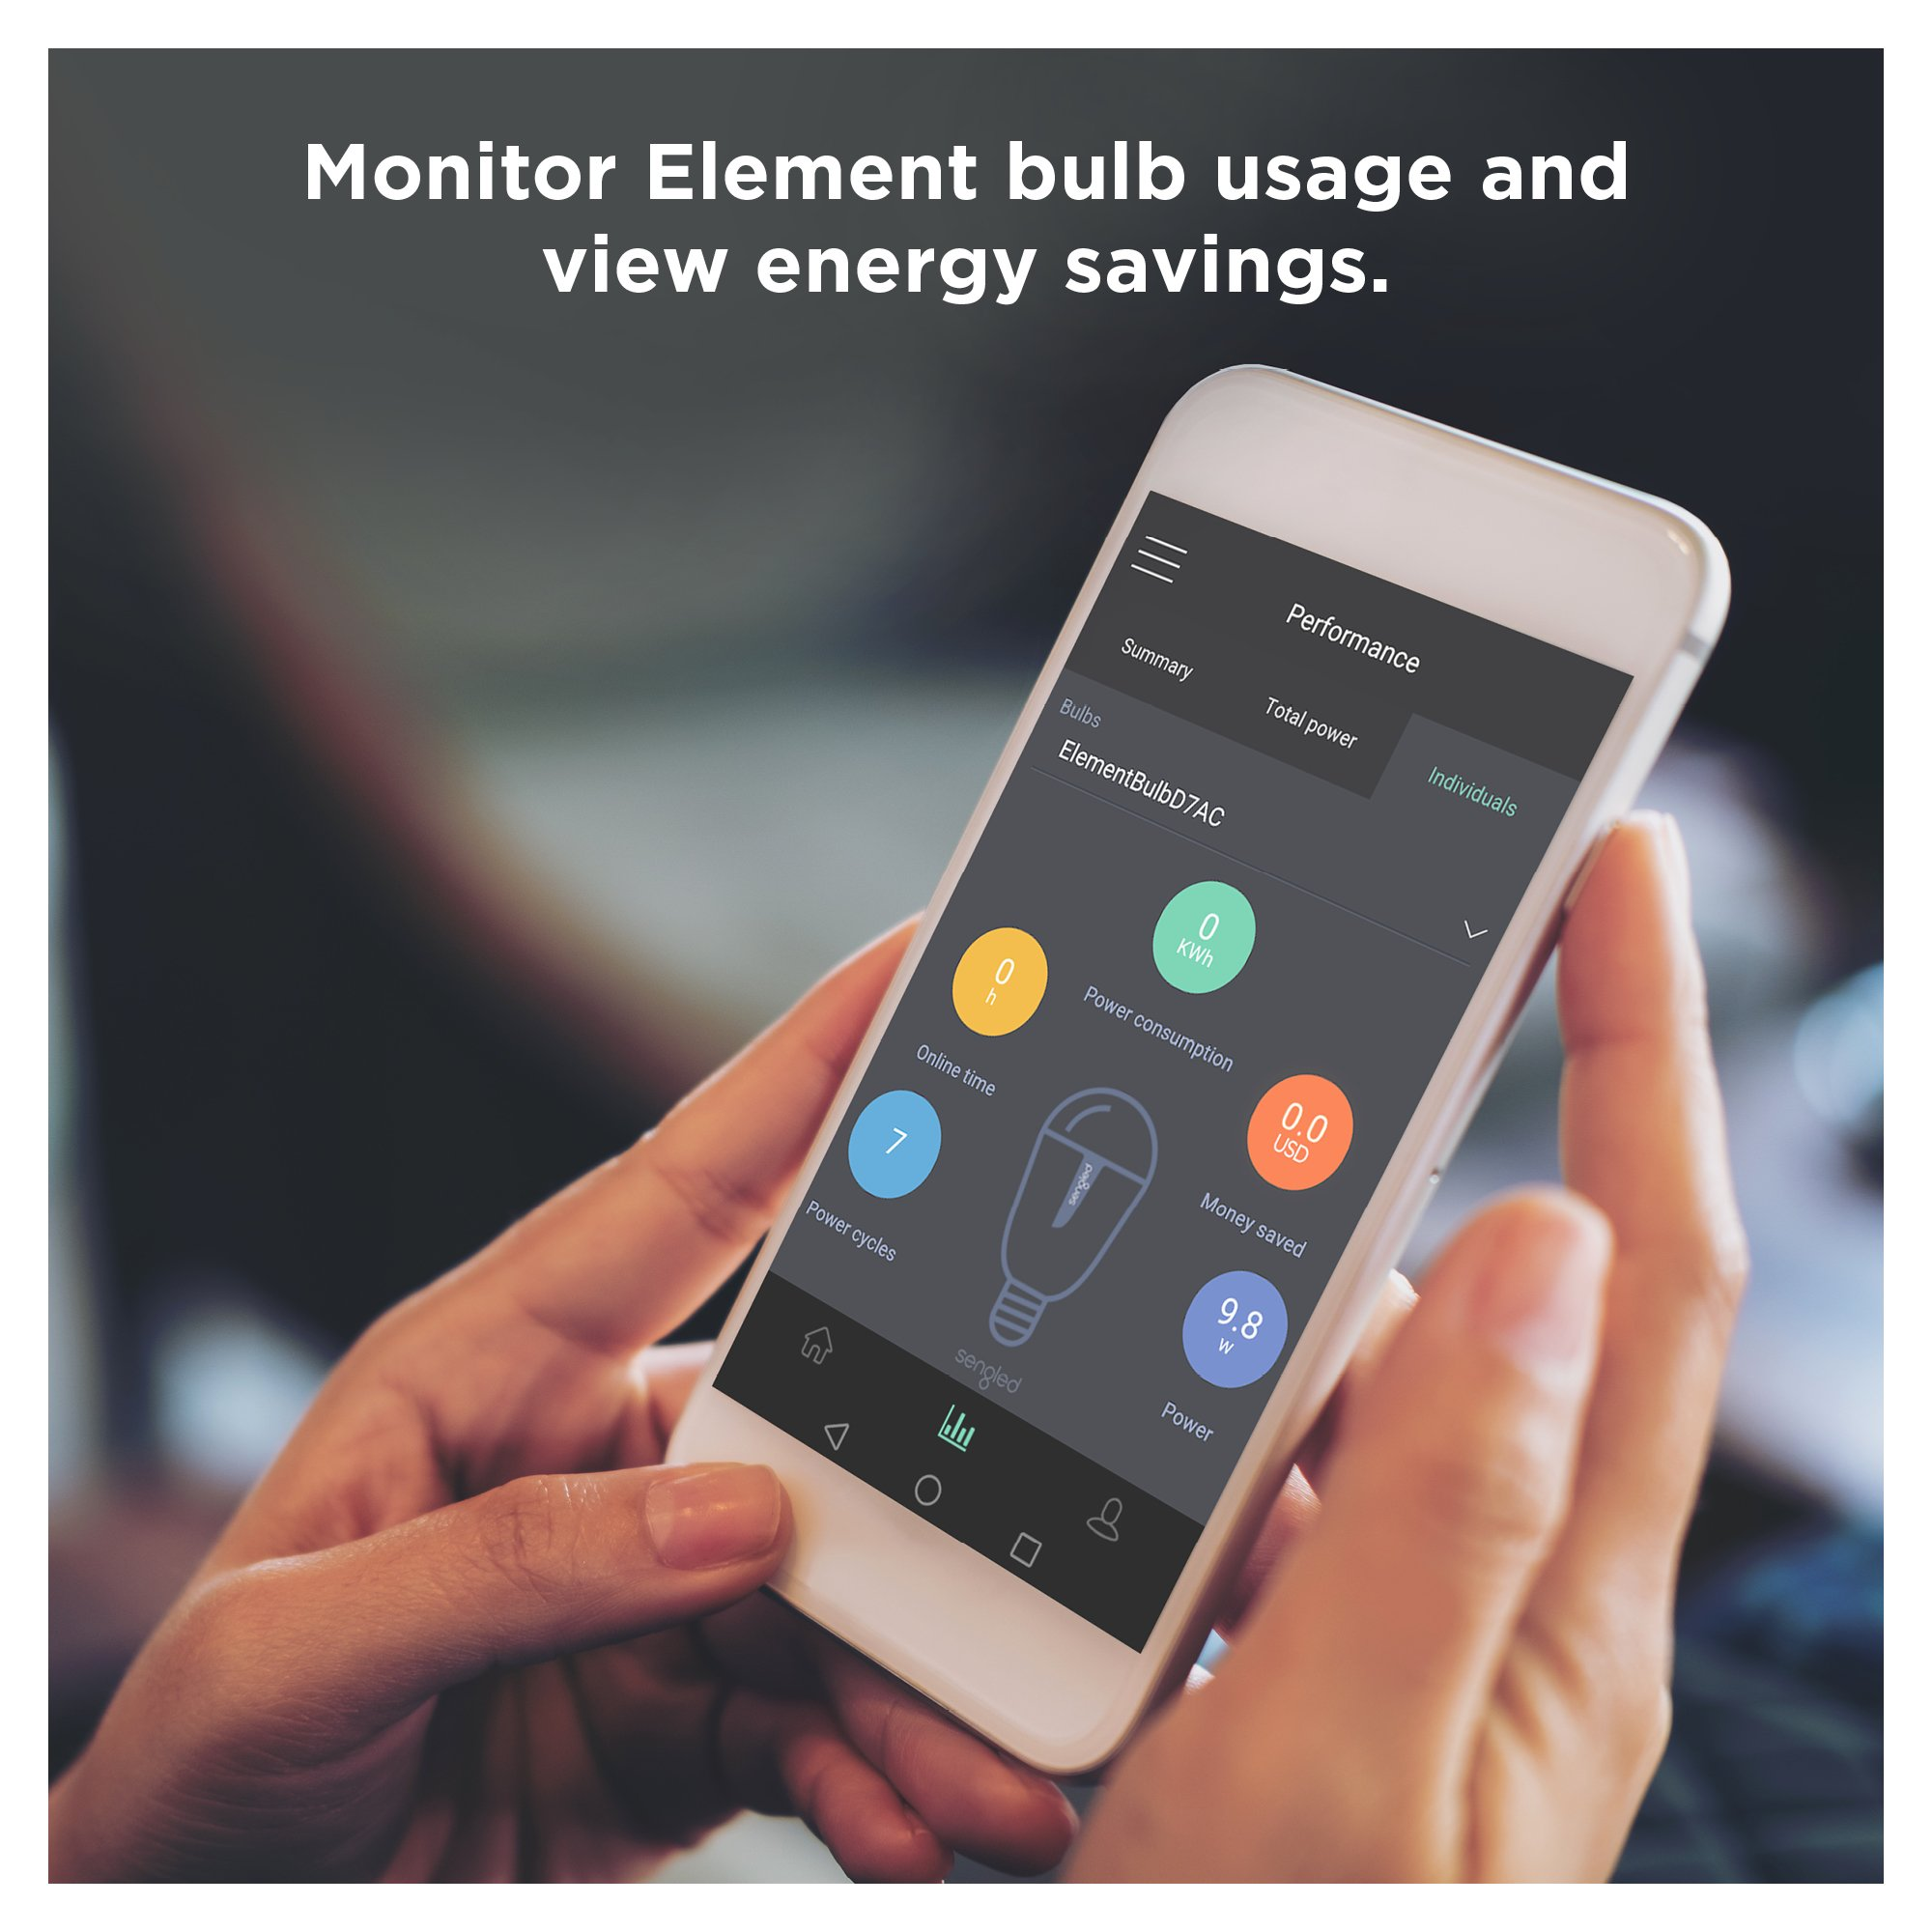 Sengled Element Plus Smart LED Light Bulb (Hub Required), A19 Dimmable LED Light Tunable White 2700-6500K 60W Equivalent, Works with Alexa/Echo Plus/SmartThings/Google Assistant, 1 Pack by Sengled (Image #8)